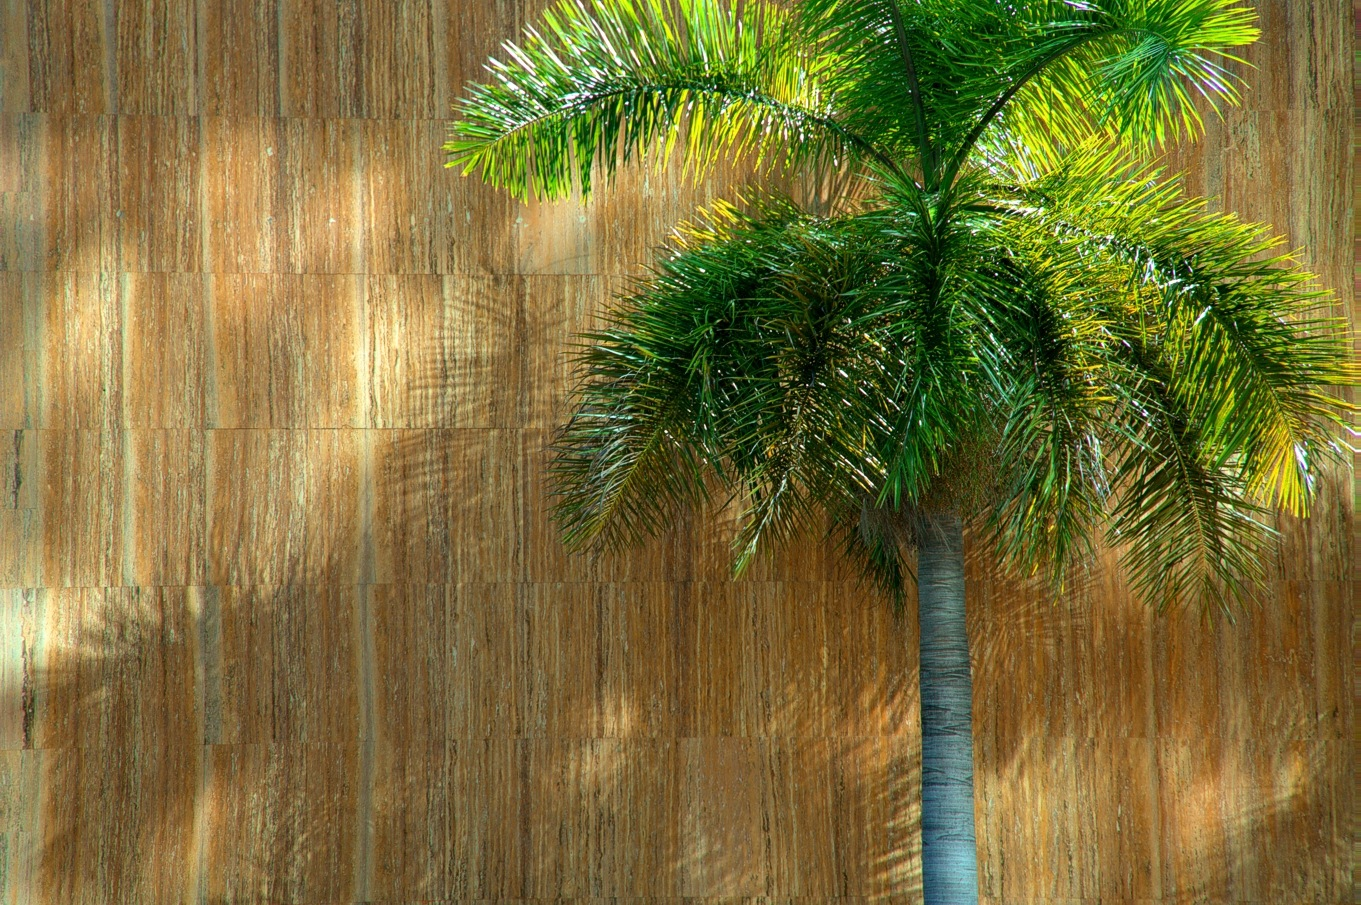 Palm Portrait by Edu Vergara